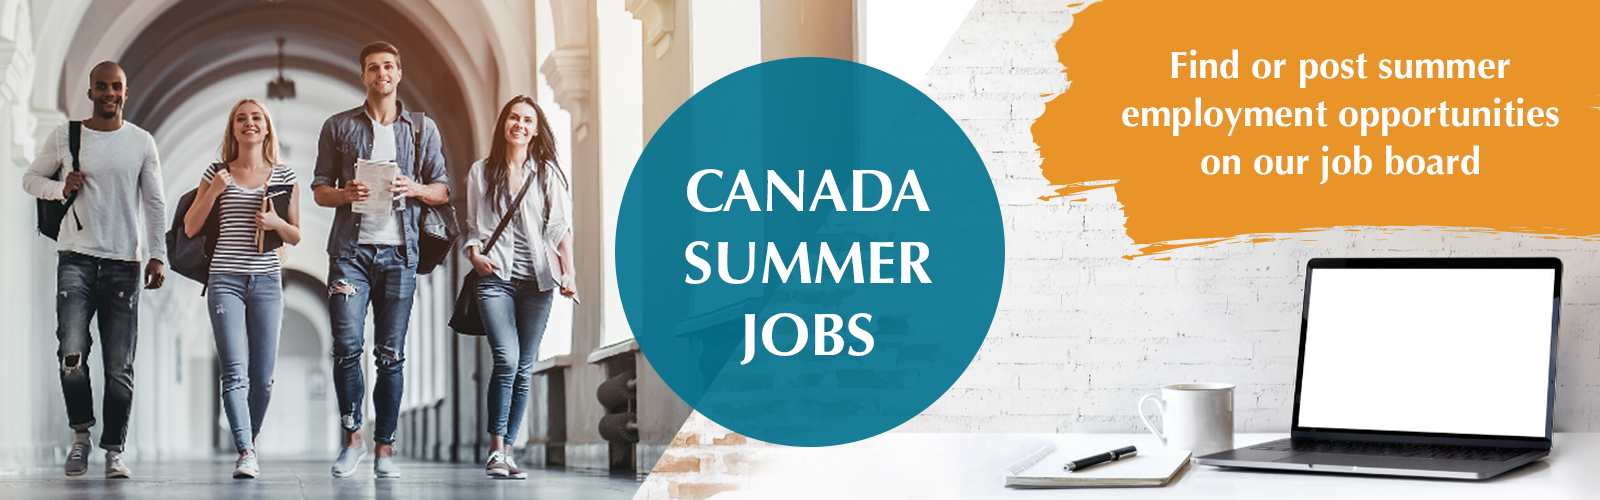 Canada Summer Jobs. Find or post employment opportunities on our job board